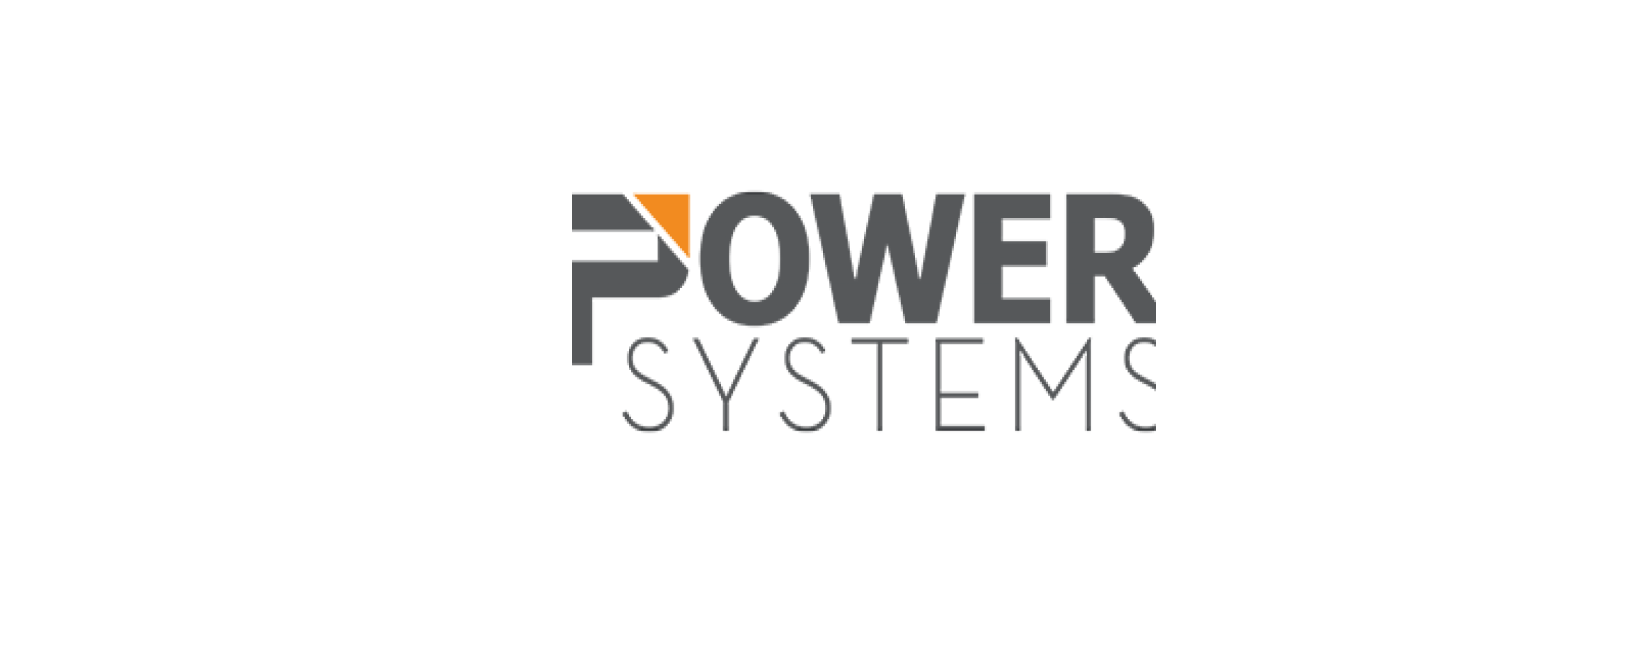 Power Systems Discount Code 2021